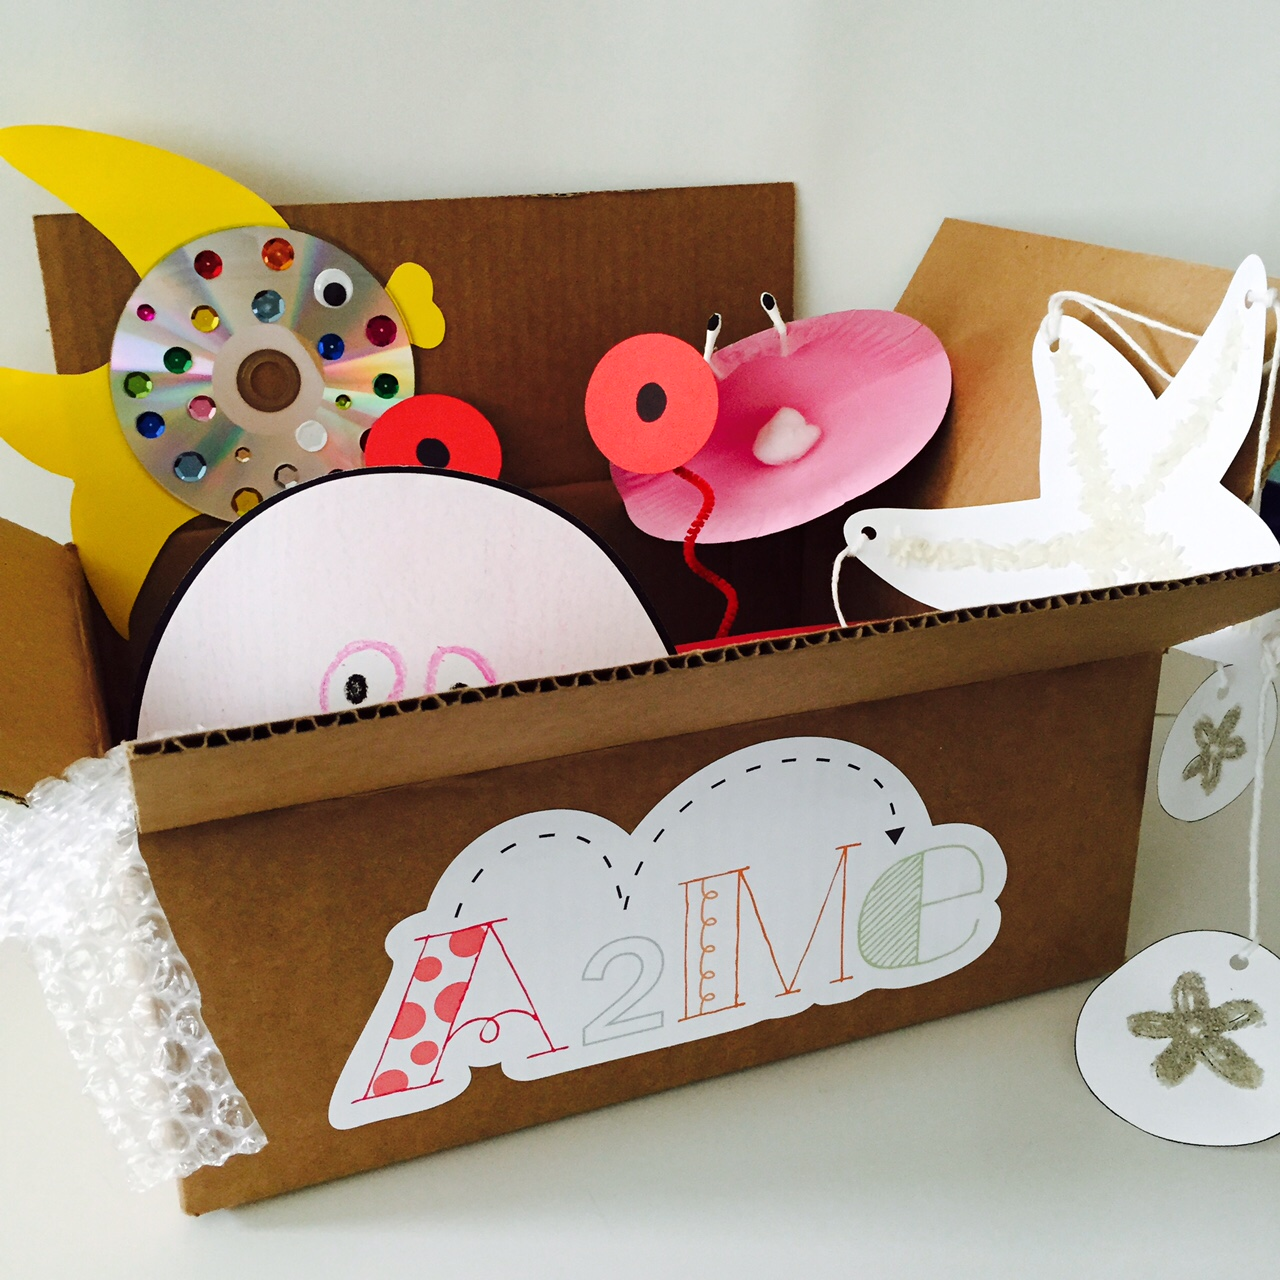 Craft: A2Me Preschool Announces Curated Craft Kits For 2015-2016